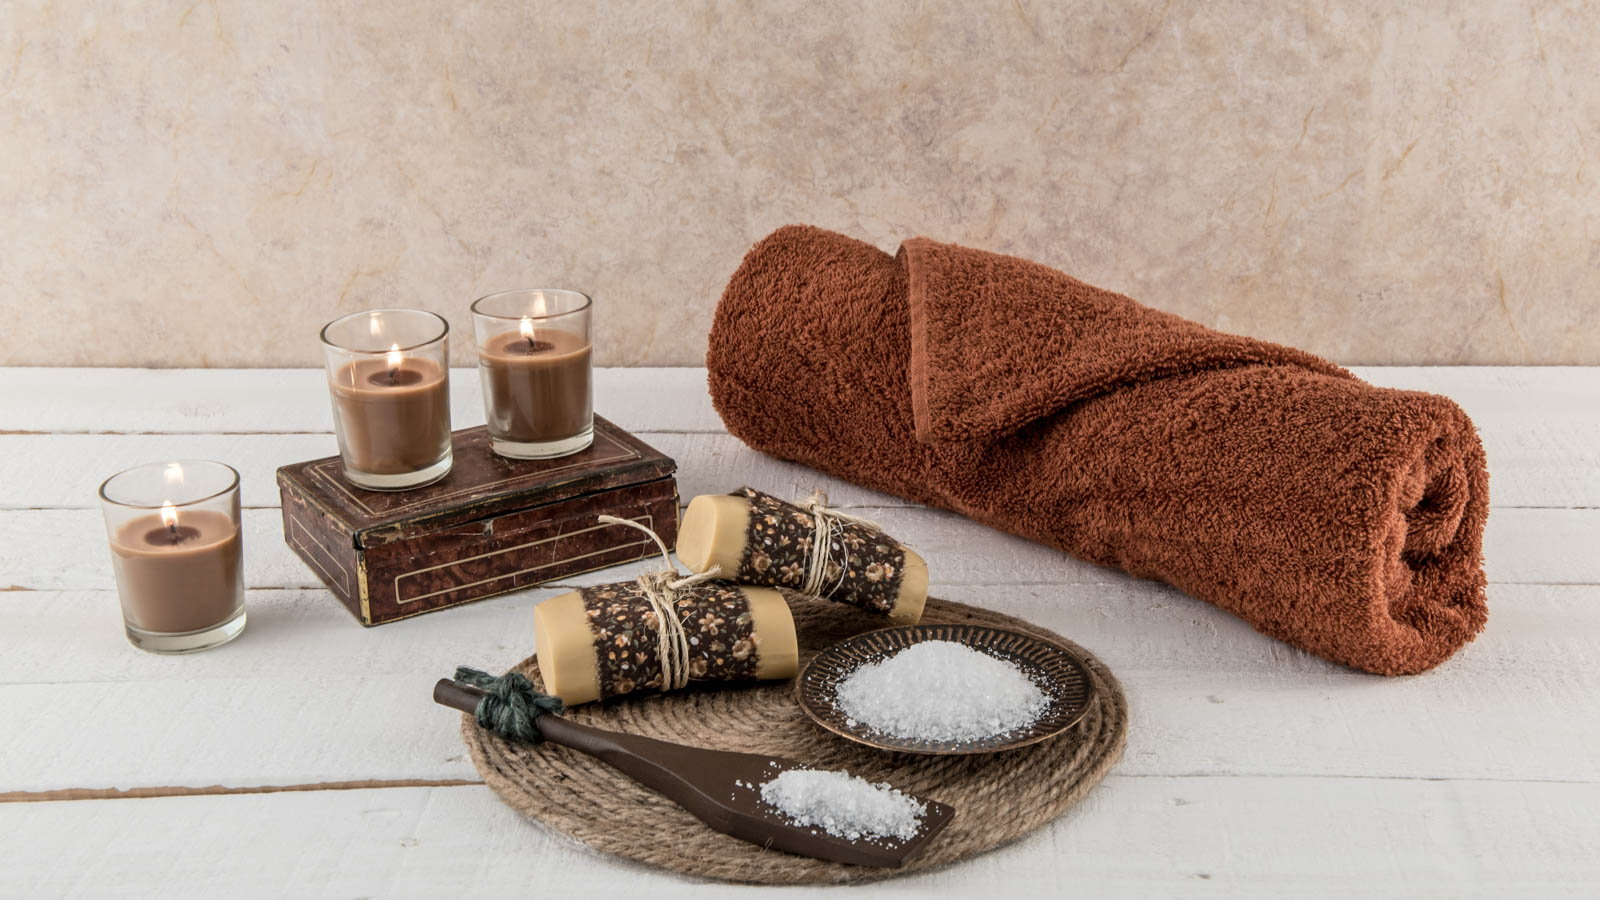 bath time spa items and candles